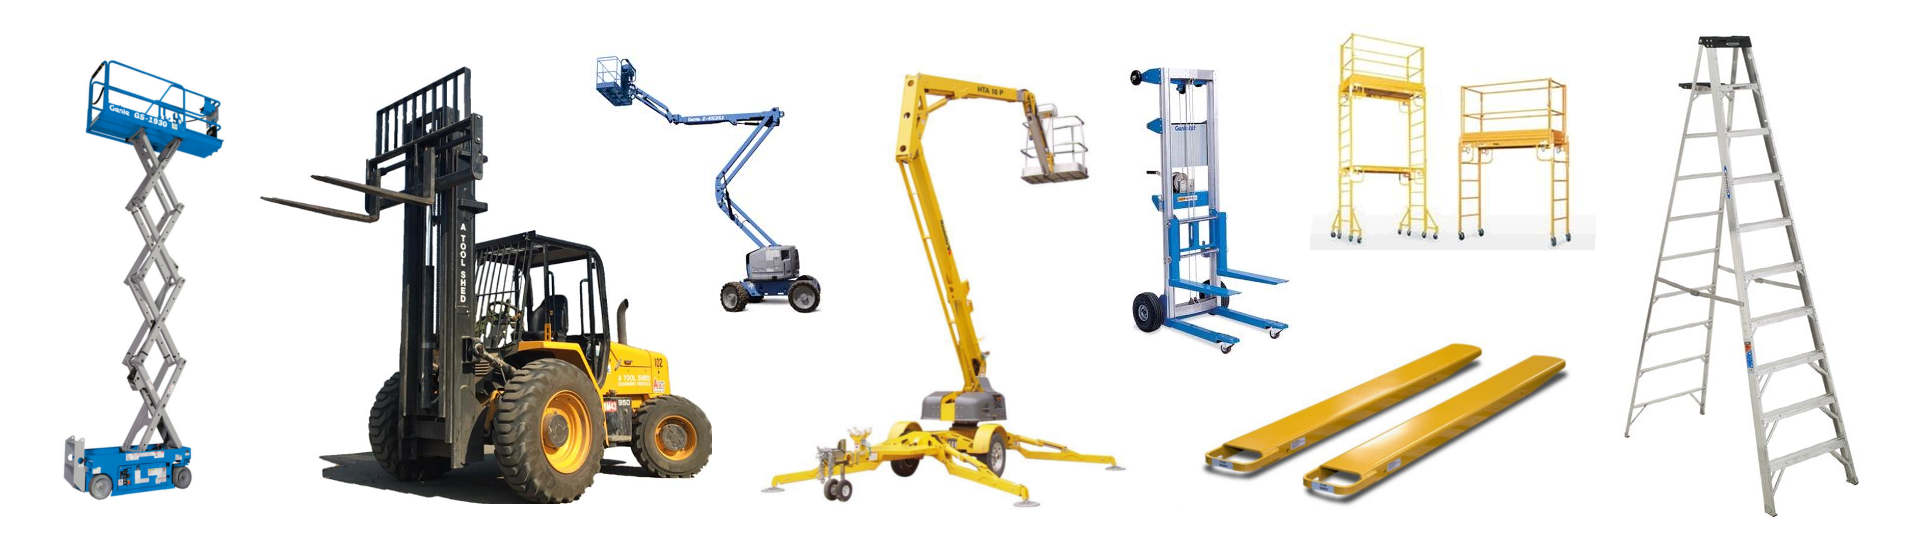 Homeowner Equipment Rentals in Santa Clara County, Santa Cruz County, Monterey Bay & the Silicon Valley